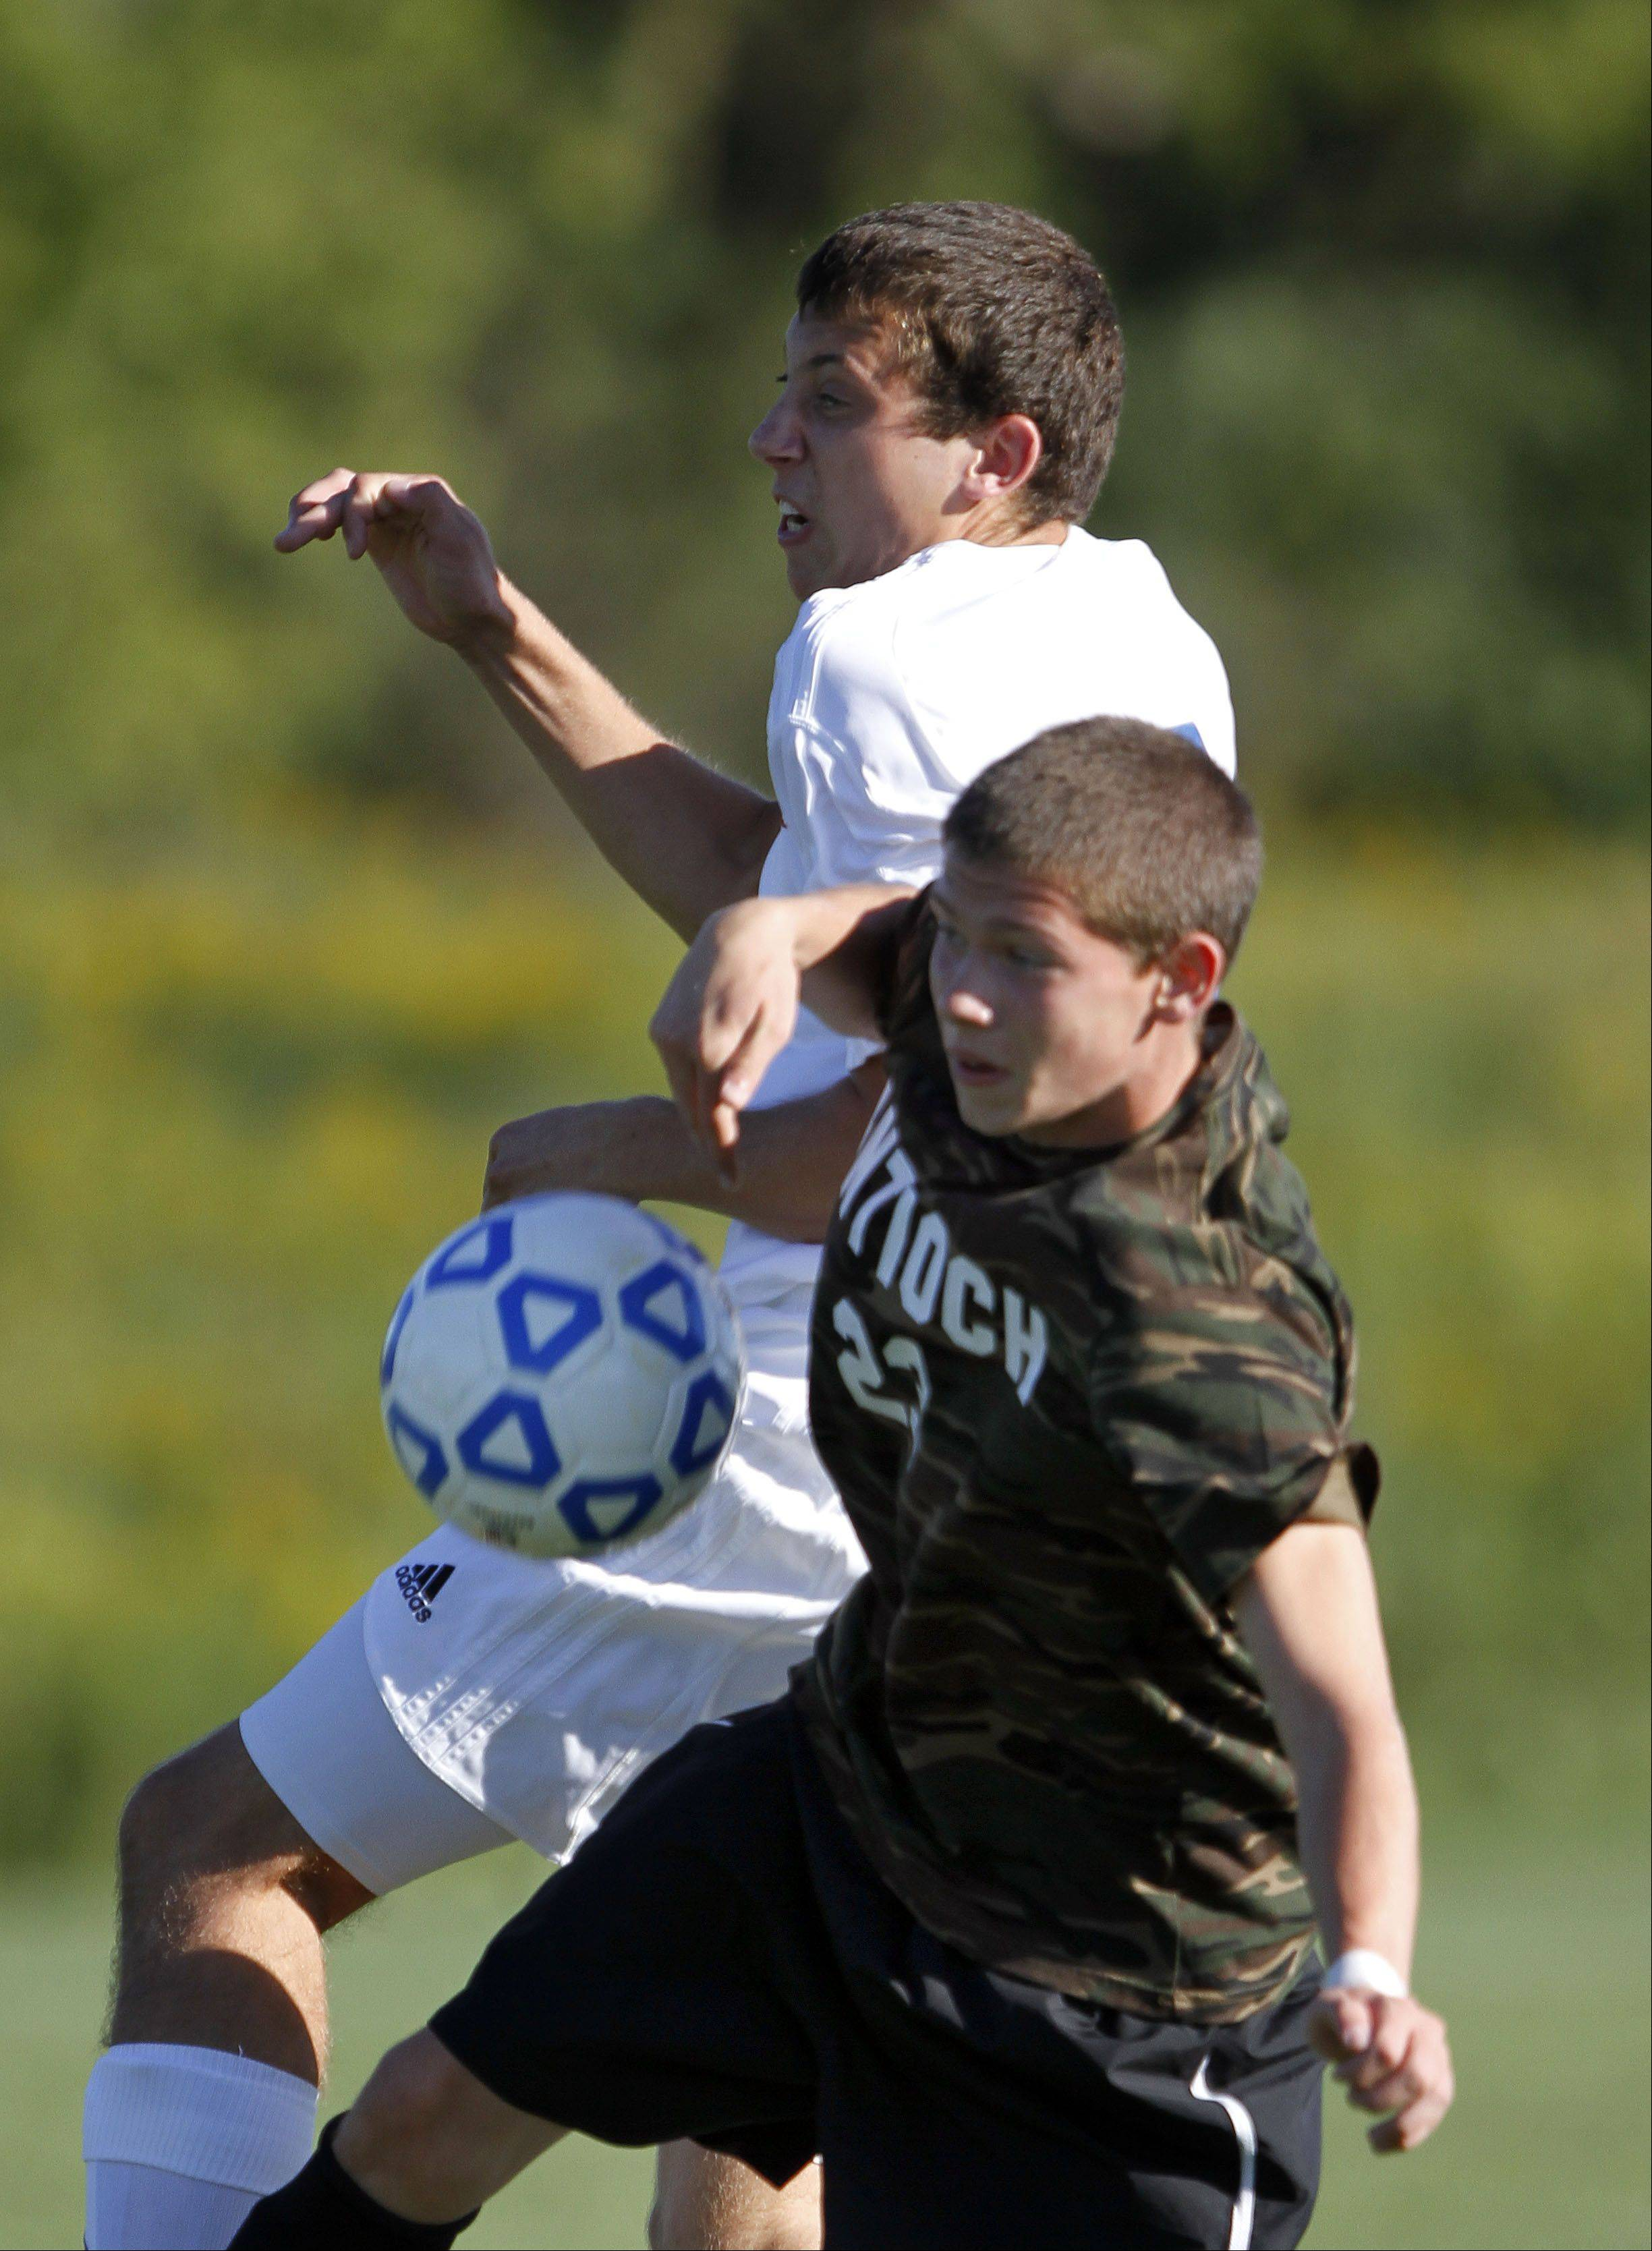 Lakes' Nichlaus Powell, left, and Antioch's Krystian Streit battle for the ball Tuesday at Lakes.